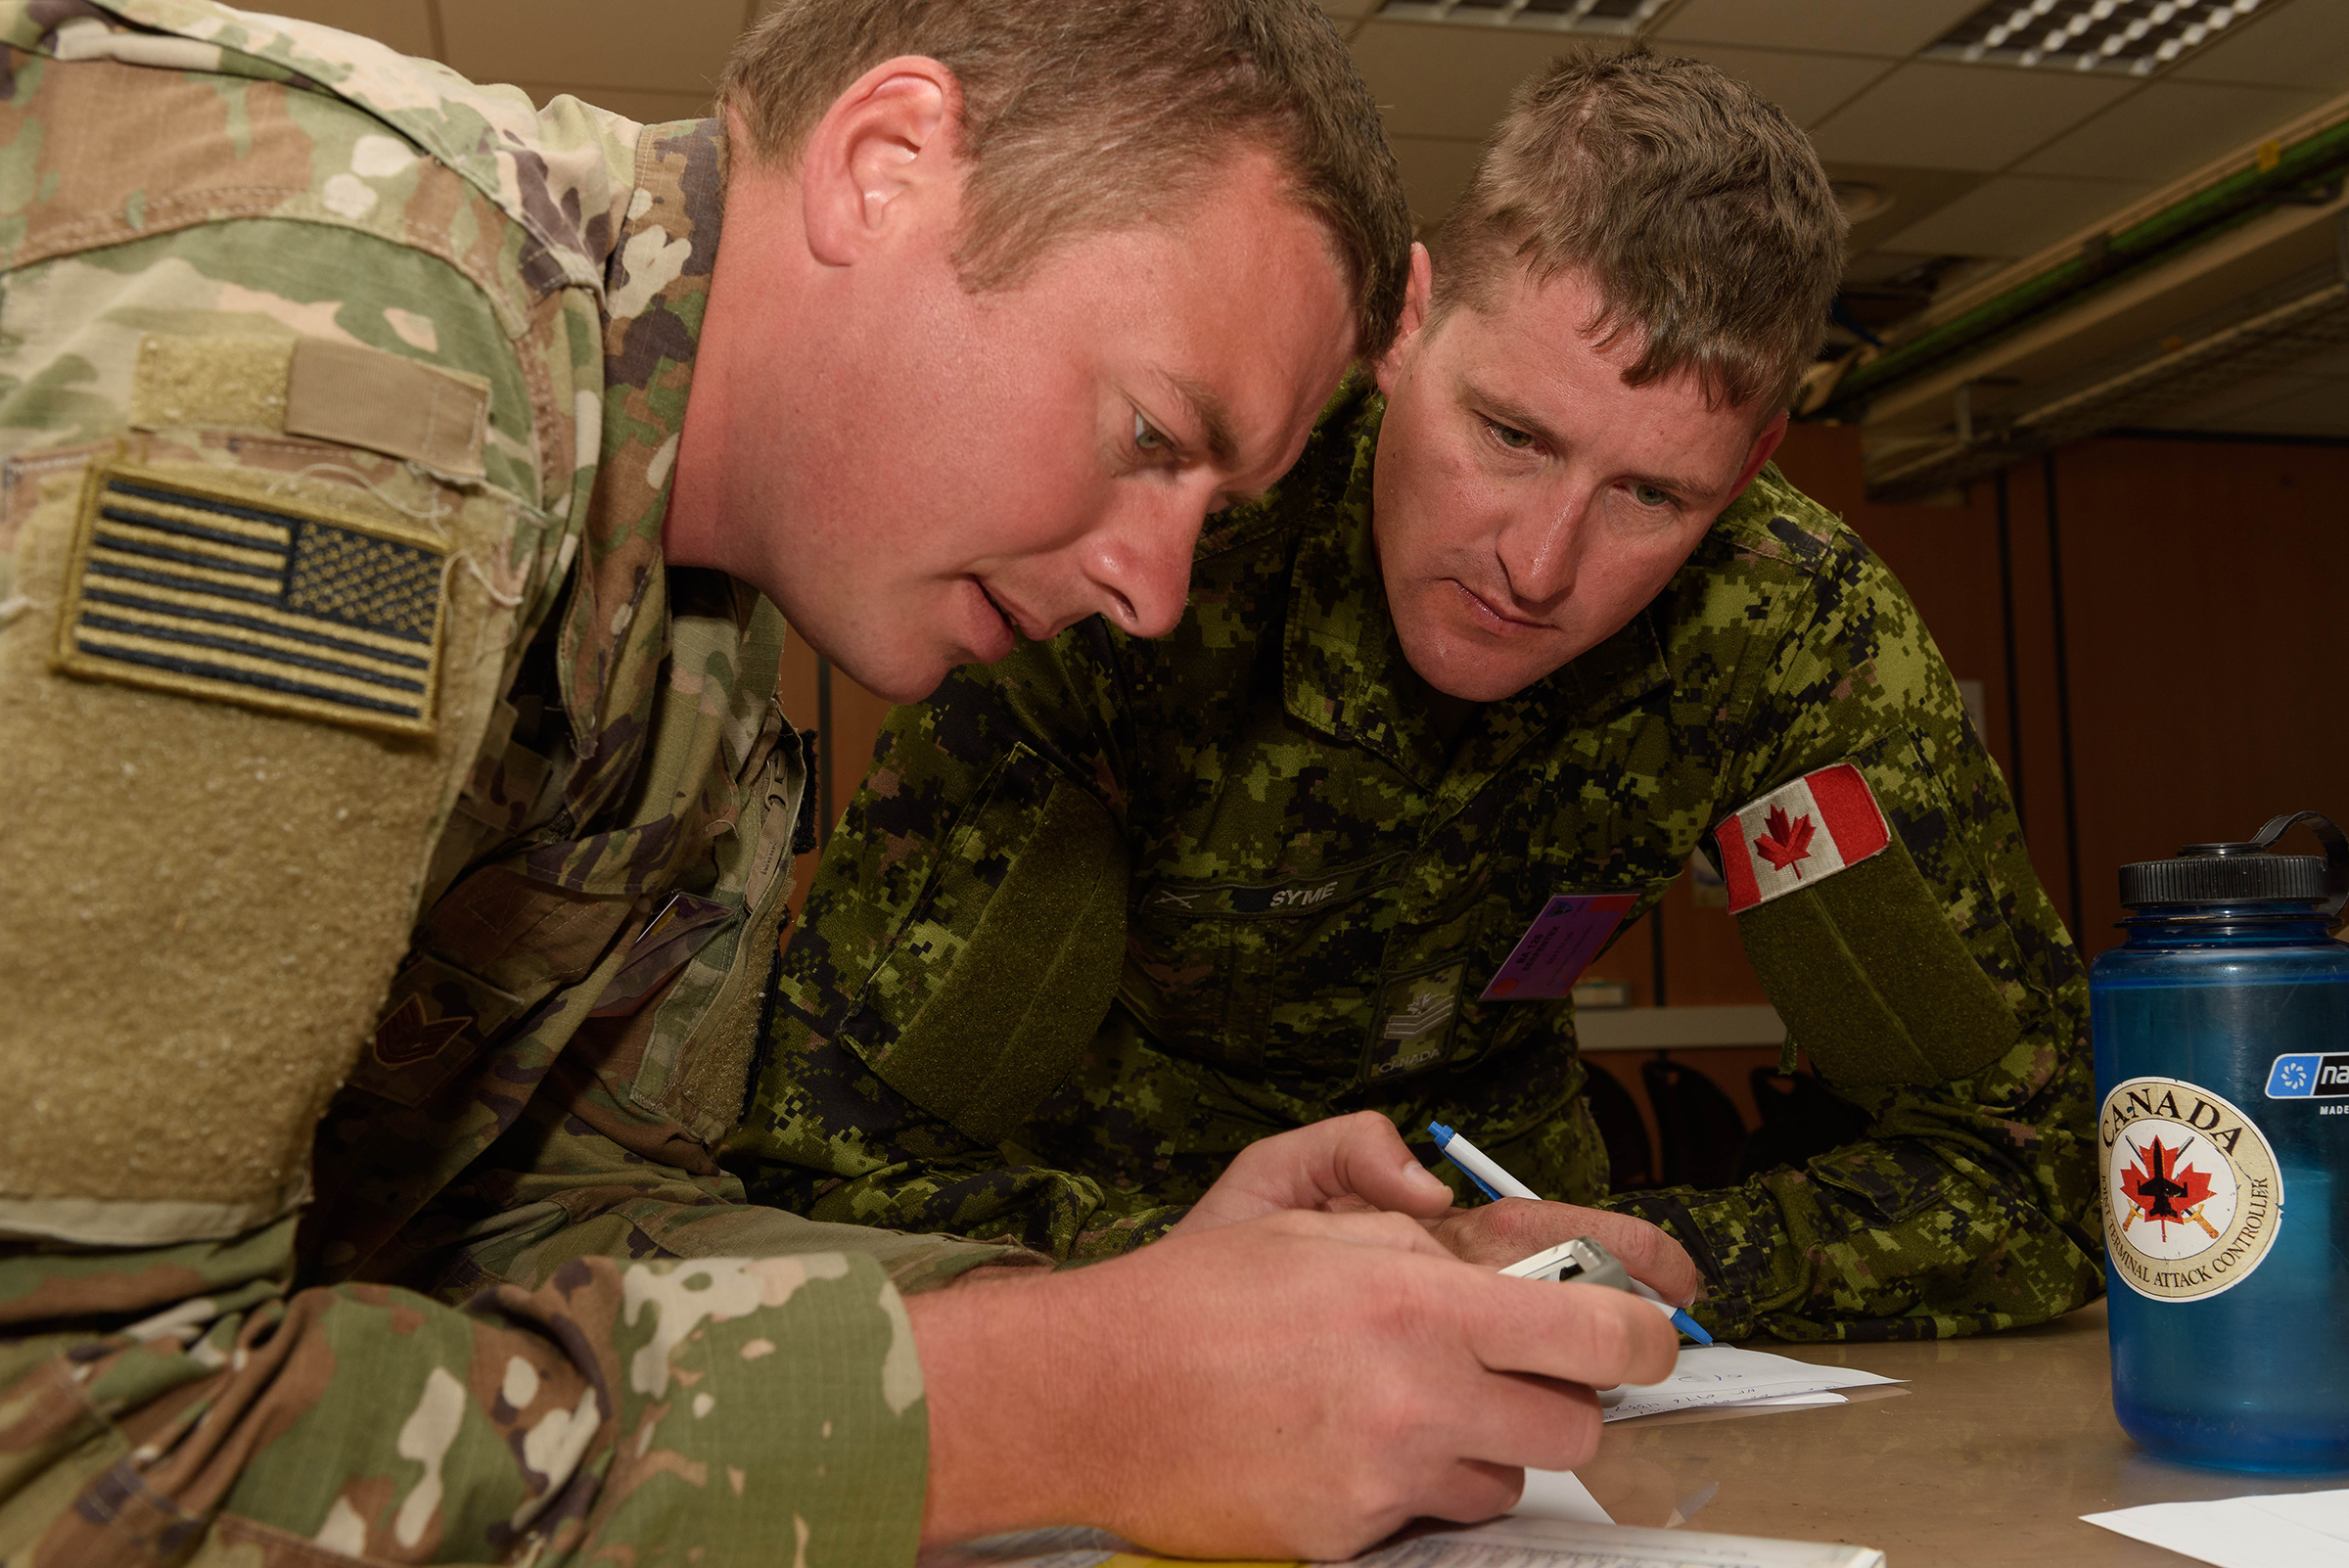 Technical Sergeant Kristopher Faber of the United States and Sergeant Tyler Syme (right), a joint terminal air controller from the Canadian Armed Forces, prepare a mission during SERPENTEX 2017 on September 21, 2017. PHOTO: Master Corporal Louis Brunet, BN53-2017-0005-005